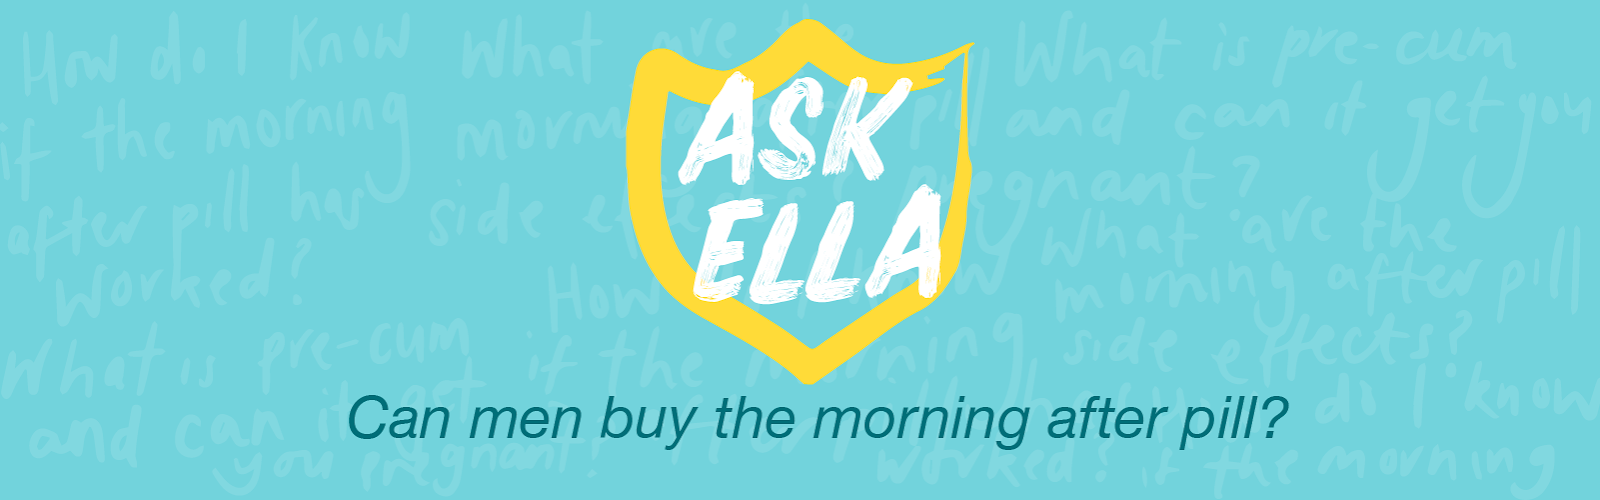 #AskElla_02_Blog_ Can men buy the morning after pill-.png